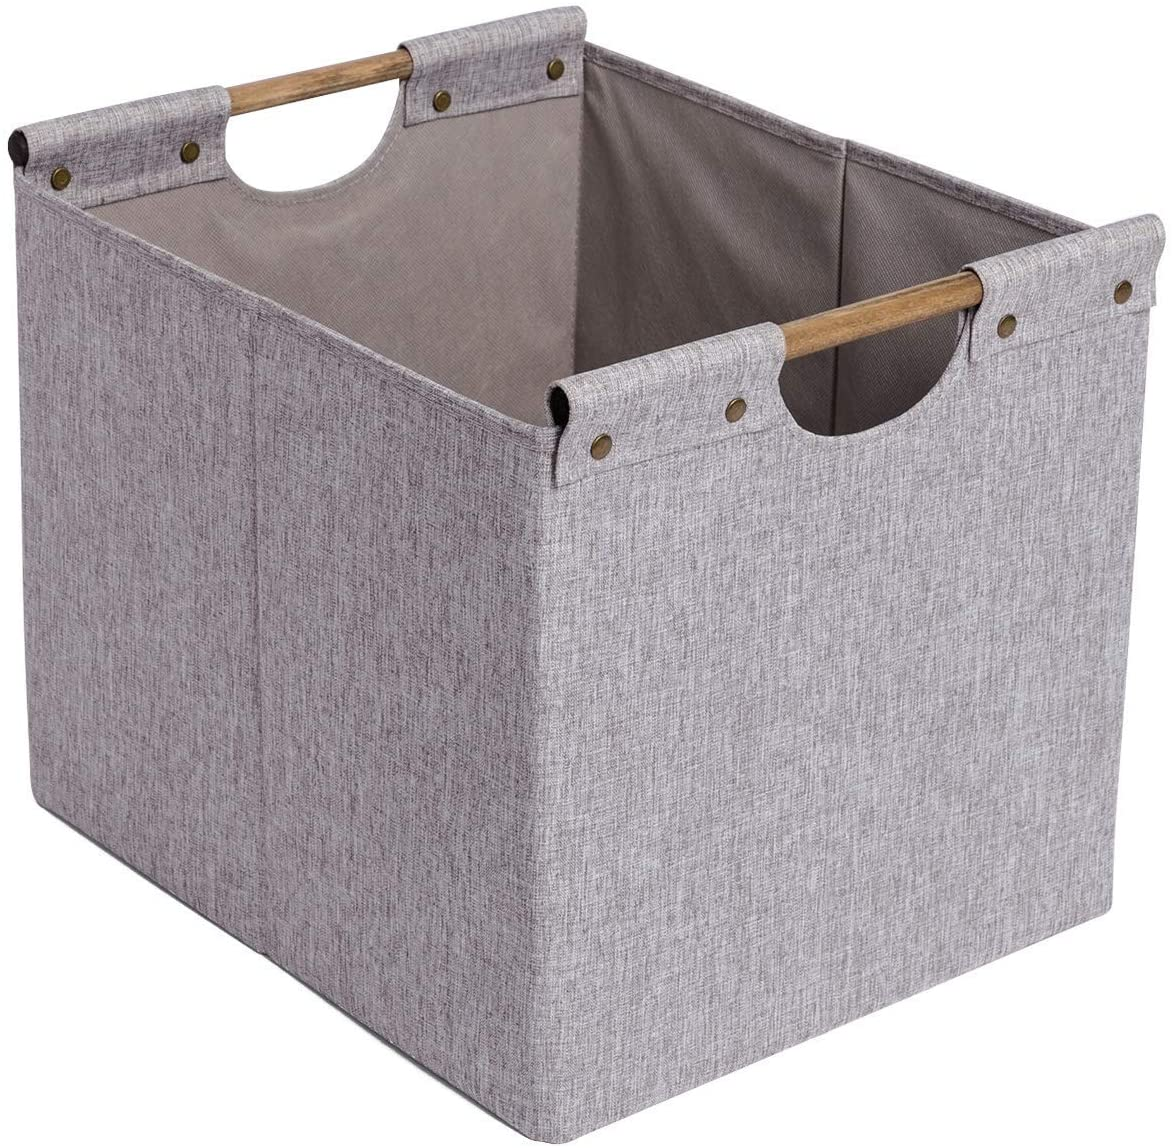 CAMEL CROWN Collapsible Storage Basket Organizer Bins Handles Box Accessories Laundry Cube for Home Office Nursery Kids (Grey-03, 1)